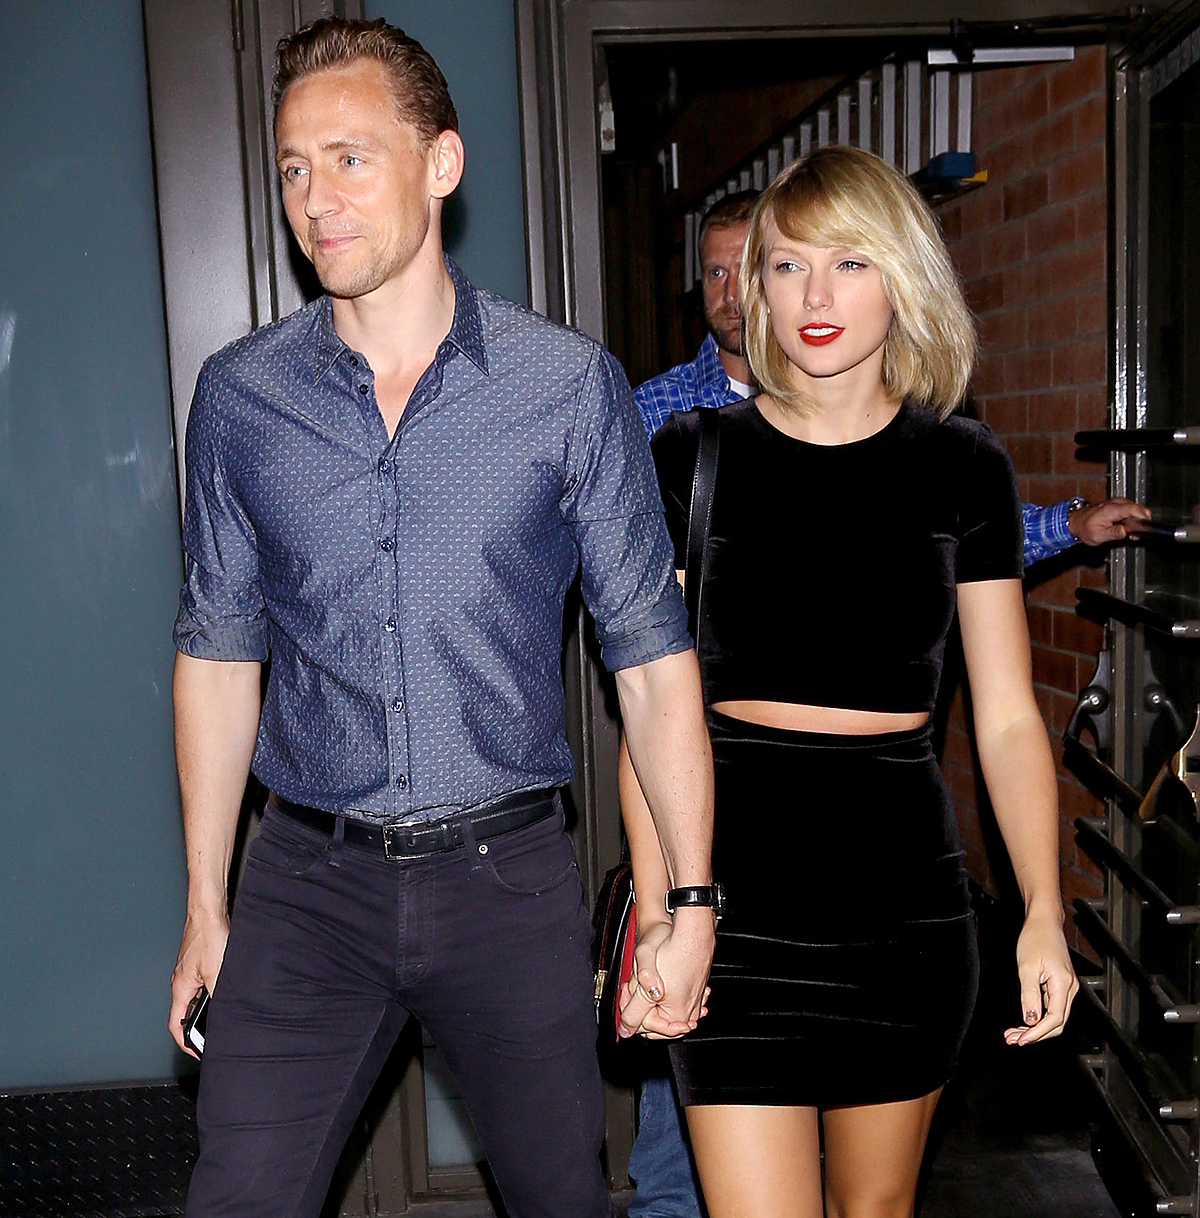 *PREMIUM EXCLUSIVE* Taylor Swift and Tom Hiddleston have a dinner date **WEB EMBARGO UNTIL 10AM PST ON 07/29/16**